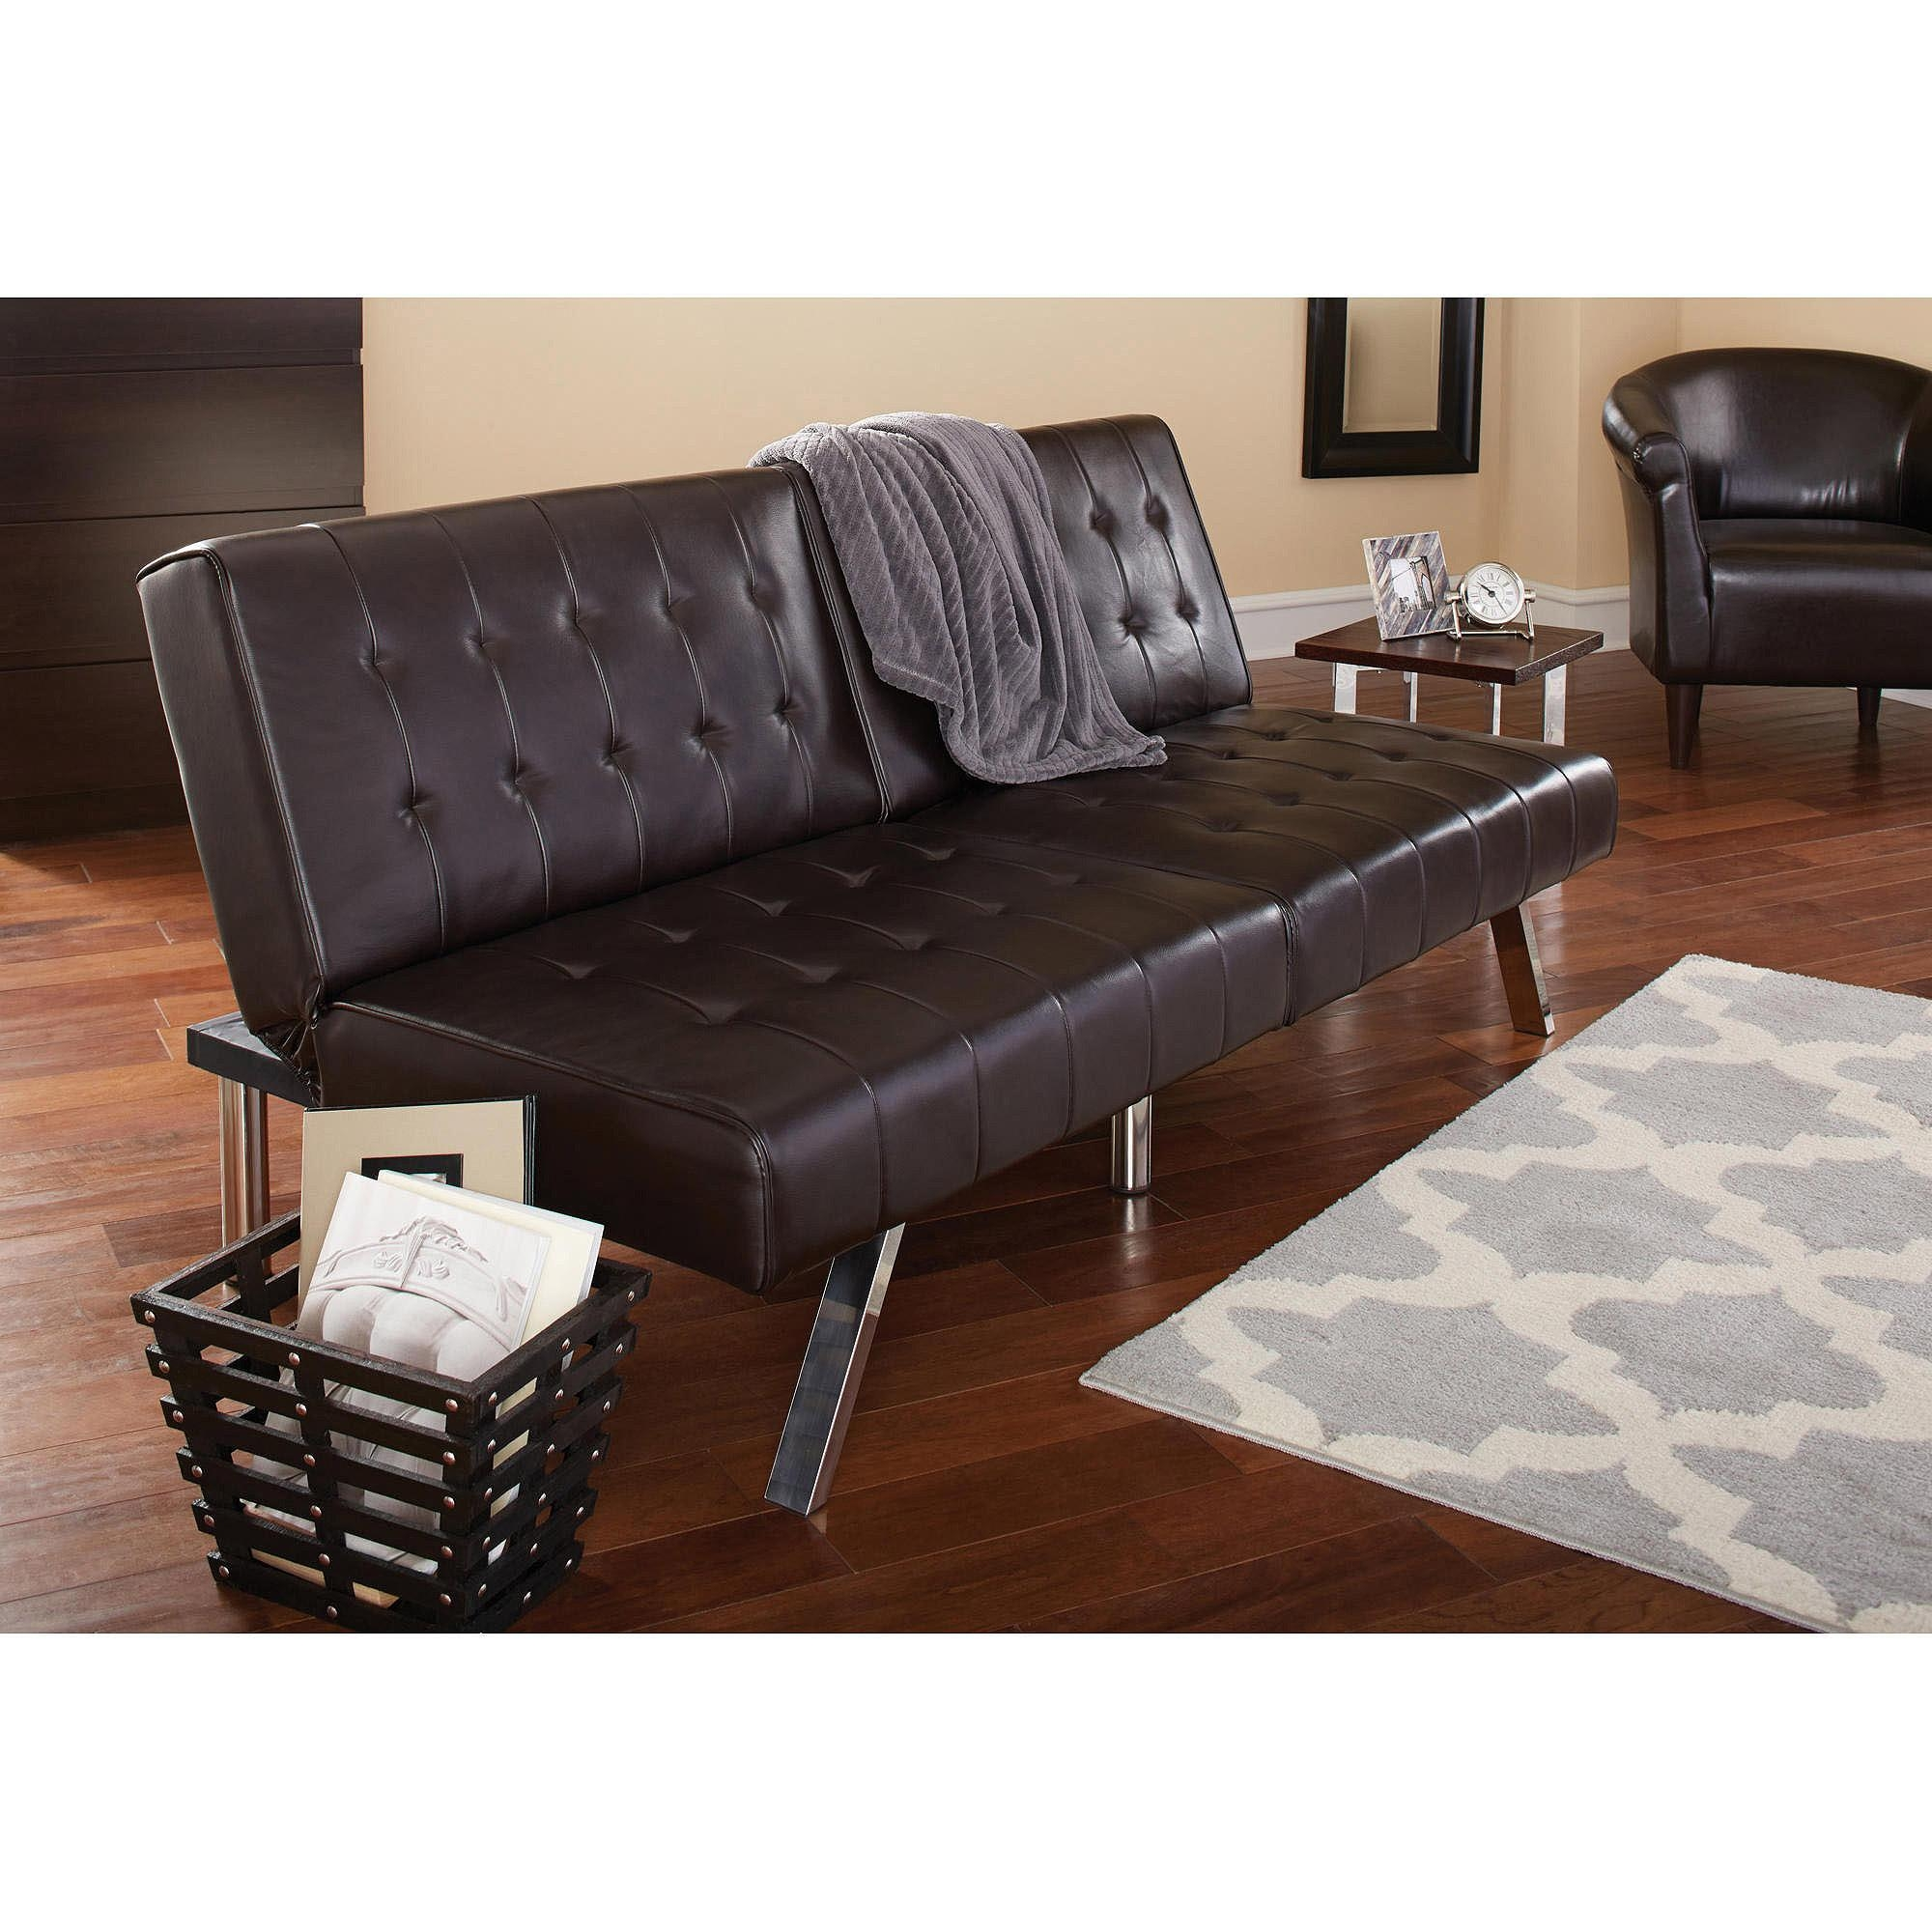 Mainstays Morgan Faux Leather Tufted Convertible Futon, Brown Within Mainstay Sofas (Image 16 of 20)